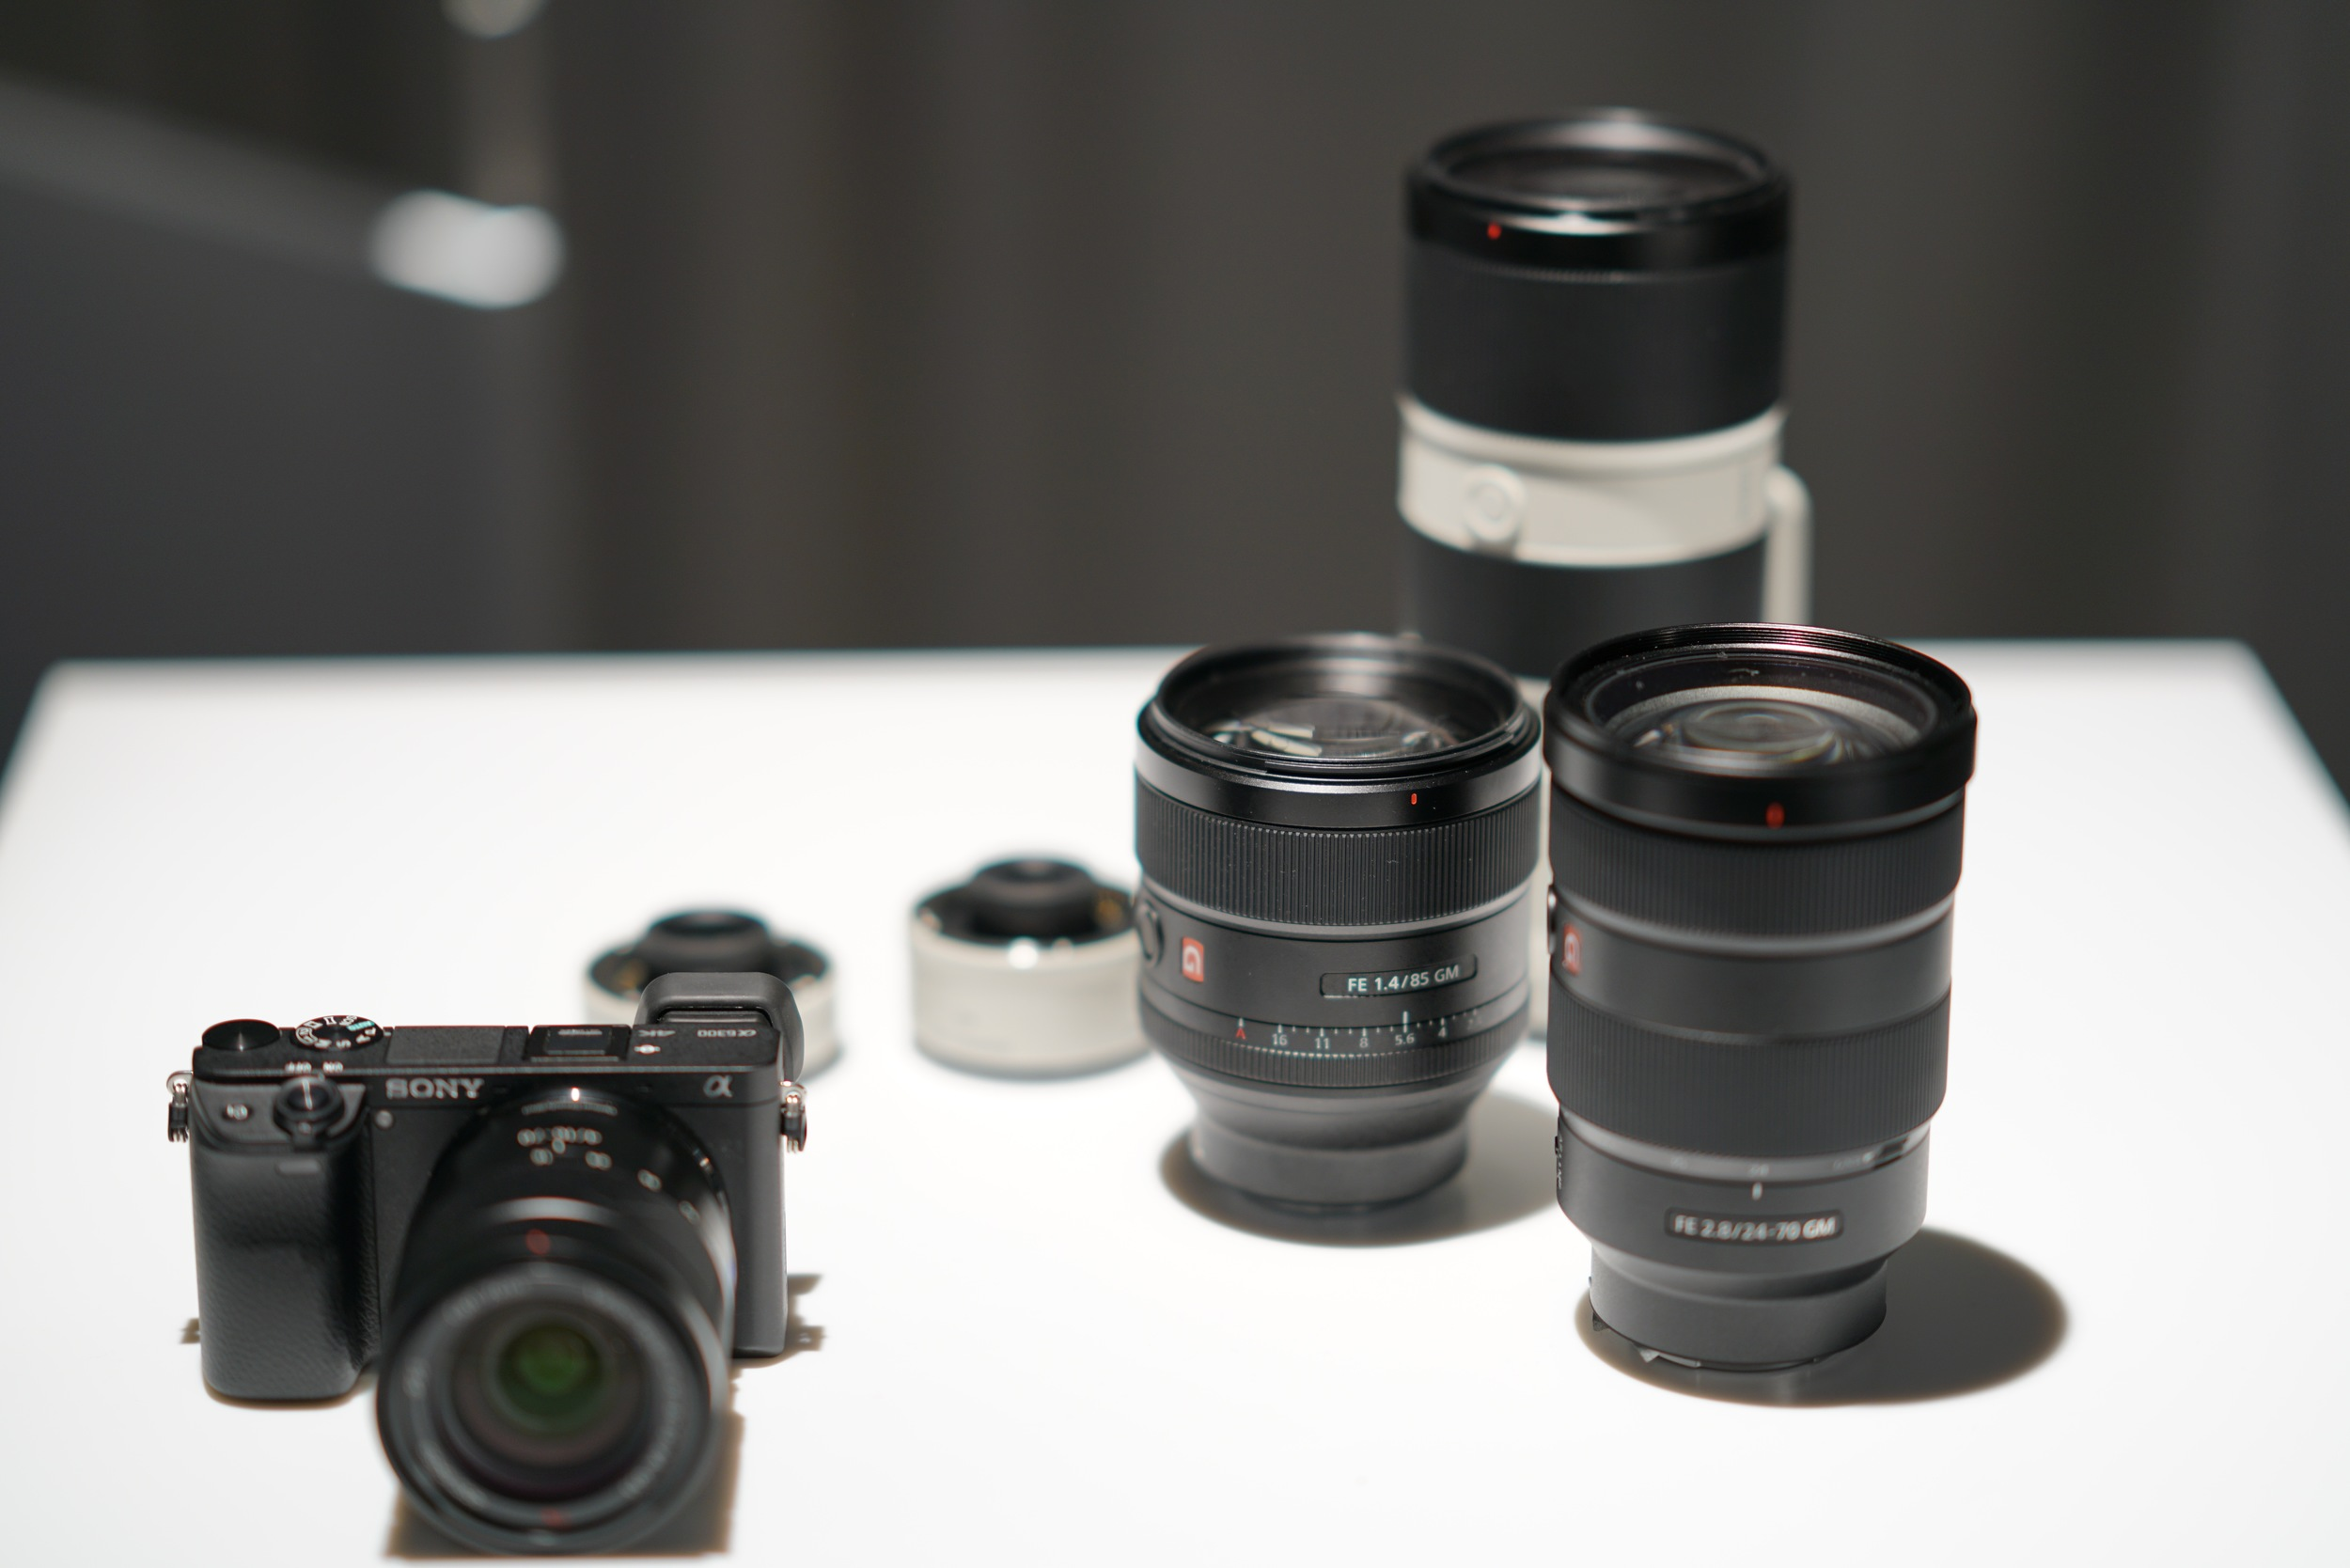 Pre-production Sony a6300, Sony FE 85mm f/1.4 GM, FE 24-70mm f/2.8 GM, 70-200mm f/2.8 GM, 1.4 and 2x teleconverters